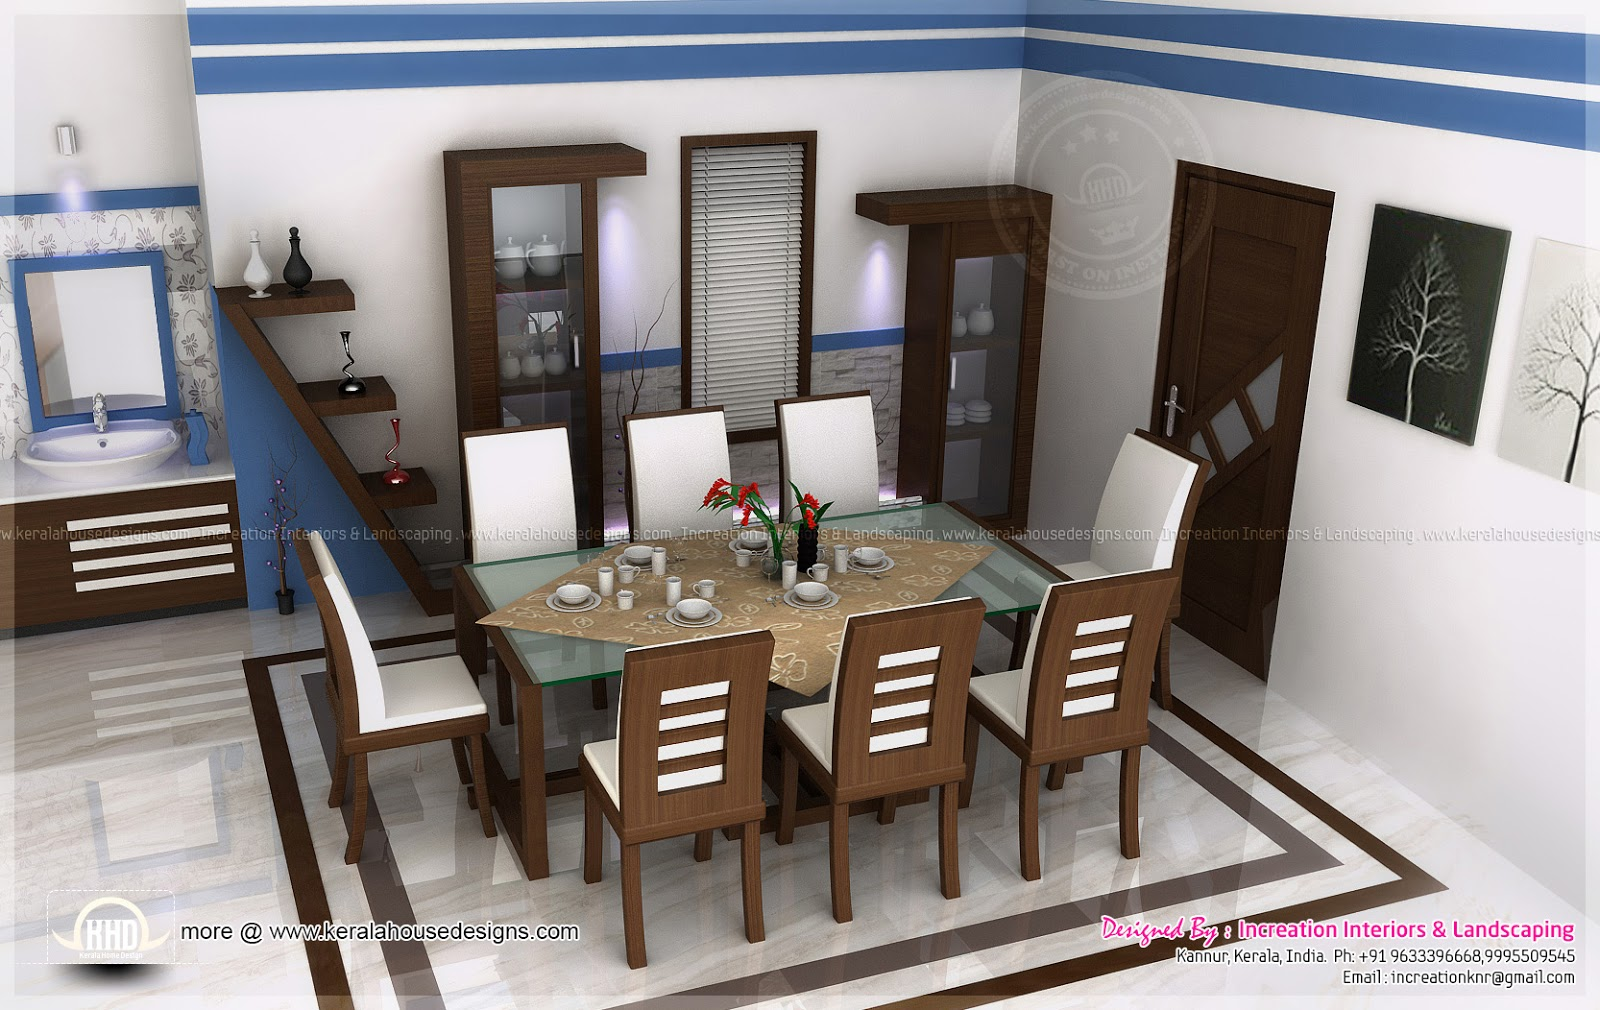 House interior ideas in 3d rendering kerala home design for At home interior design